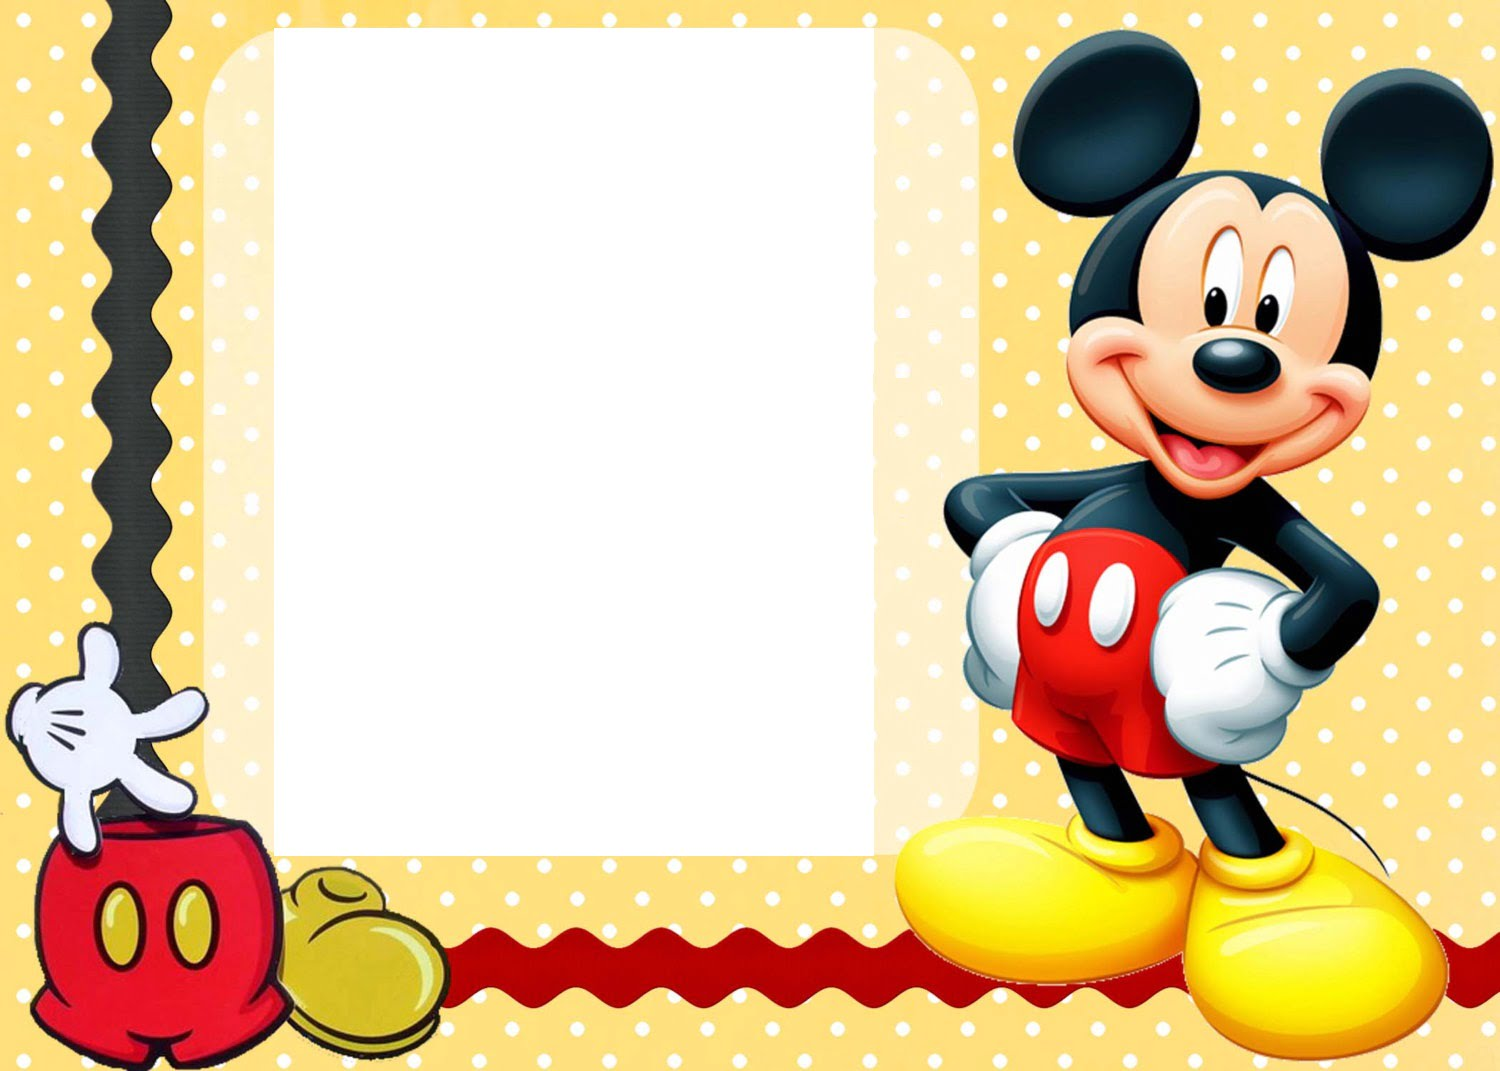 Free Printable Custom Mickey Mouse Baby Shower Invitation Template | Baby Shower for Parents